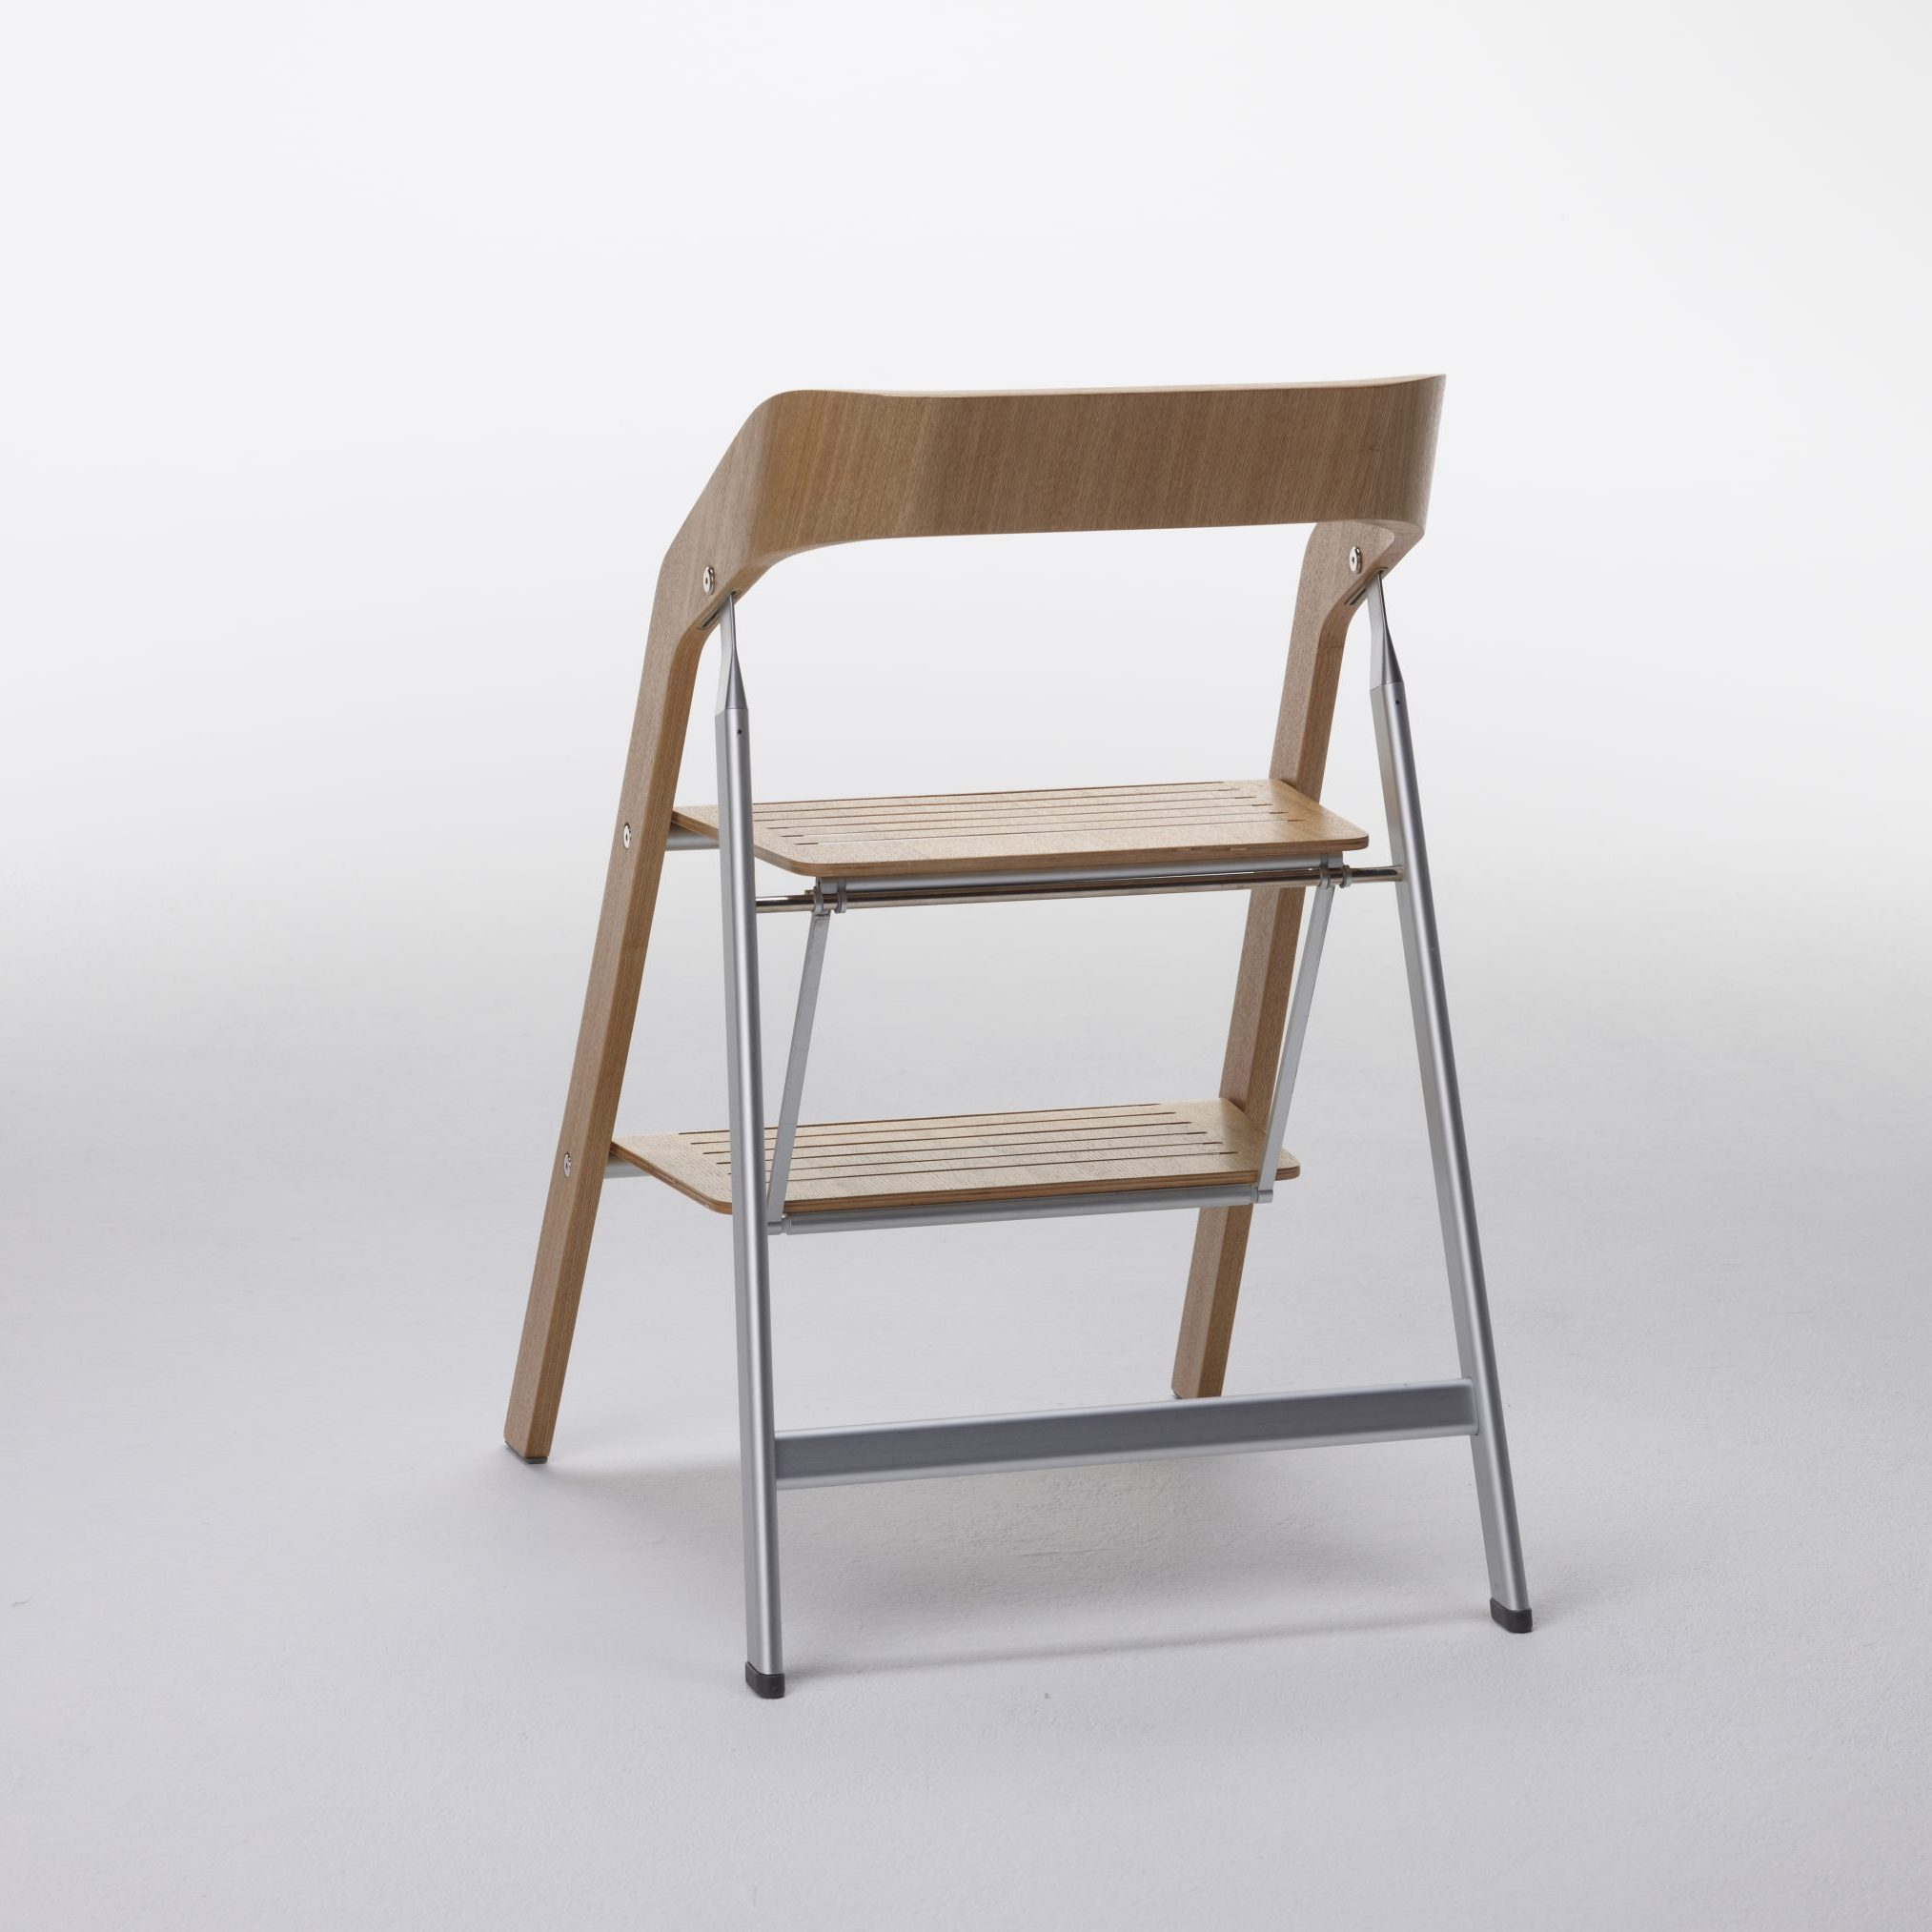 Stupendous Design Usit Design Caraccident5 Cool Chair Designs And Ideas Caraccident5Info